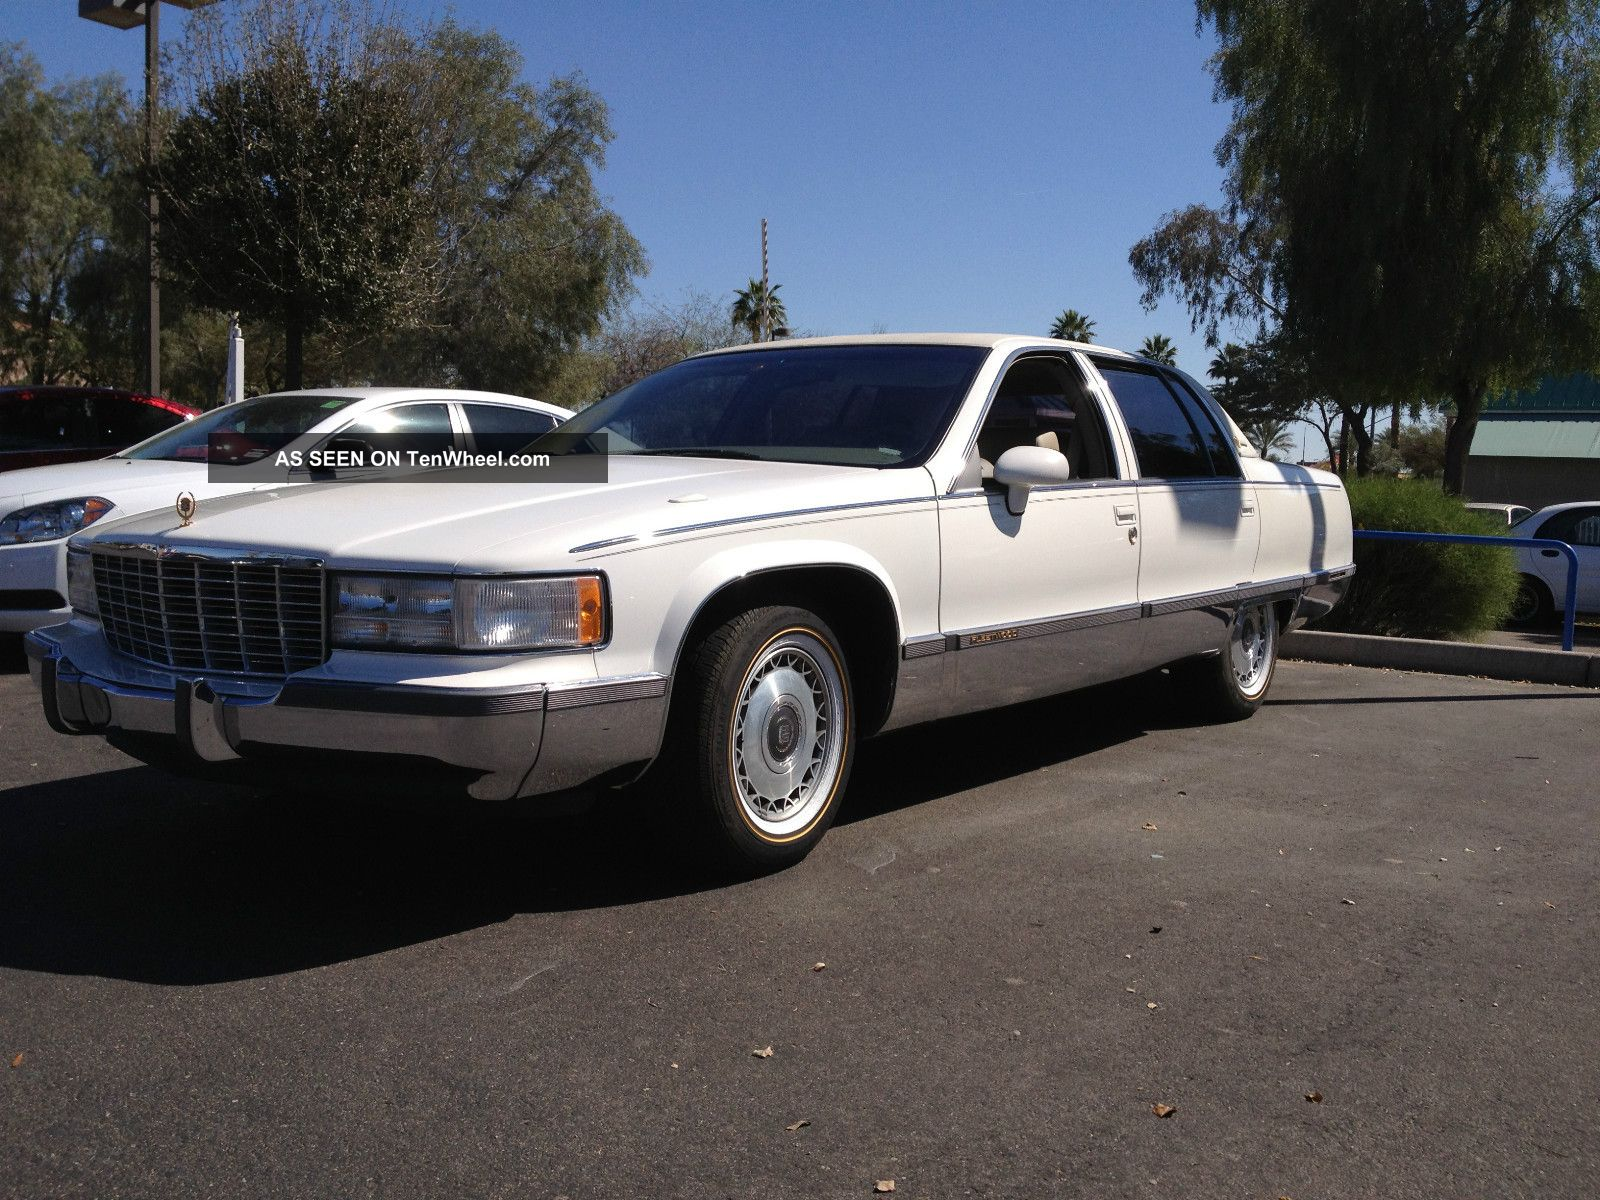 1994 cadillac fleetwood brougham sedan 4 door 5 7l fleetwood photo. Cars Review. Best American Auto & Cars Review